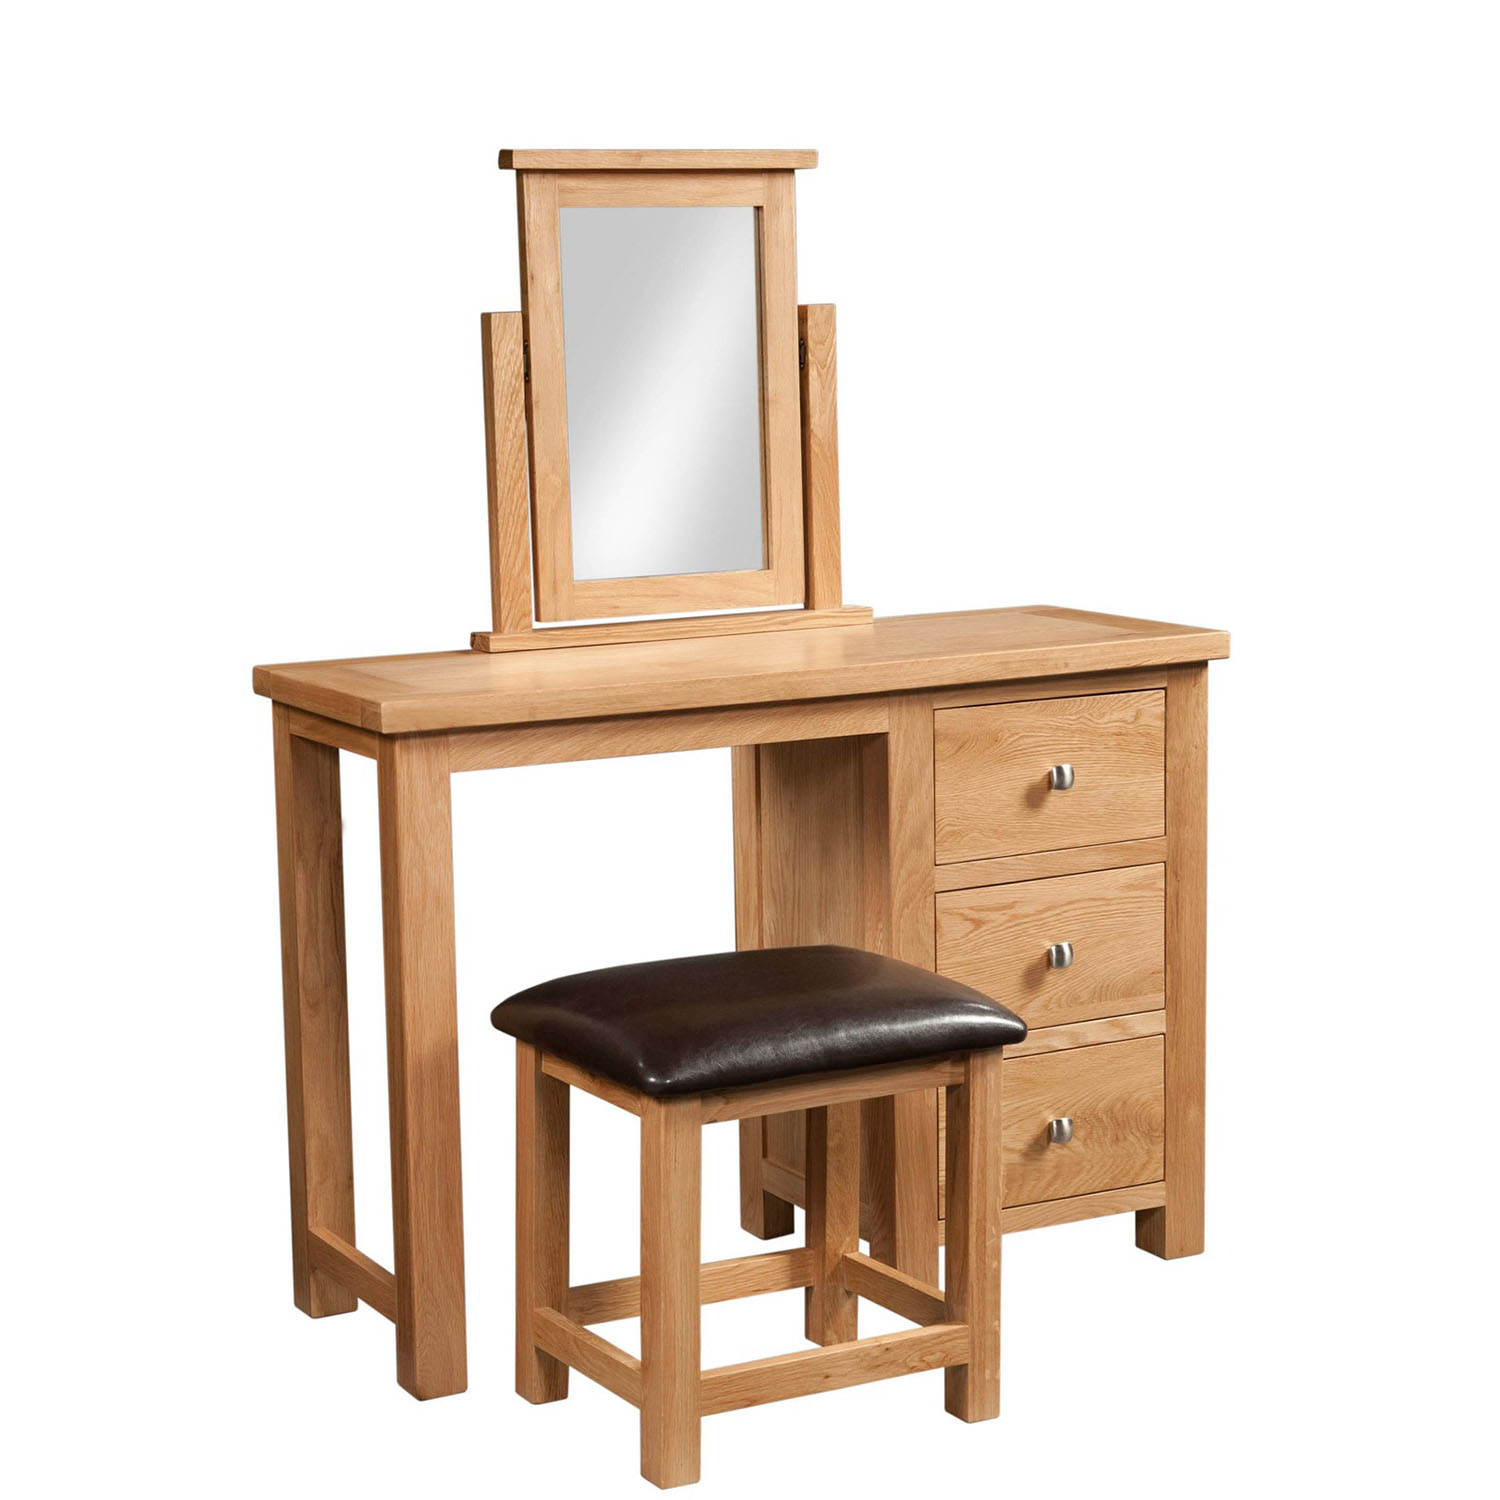 Maiden Oak Single Pedestal Dressing Table and Stool